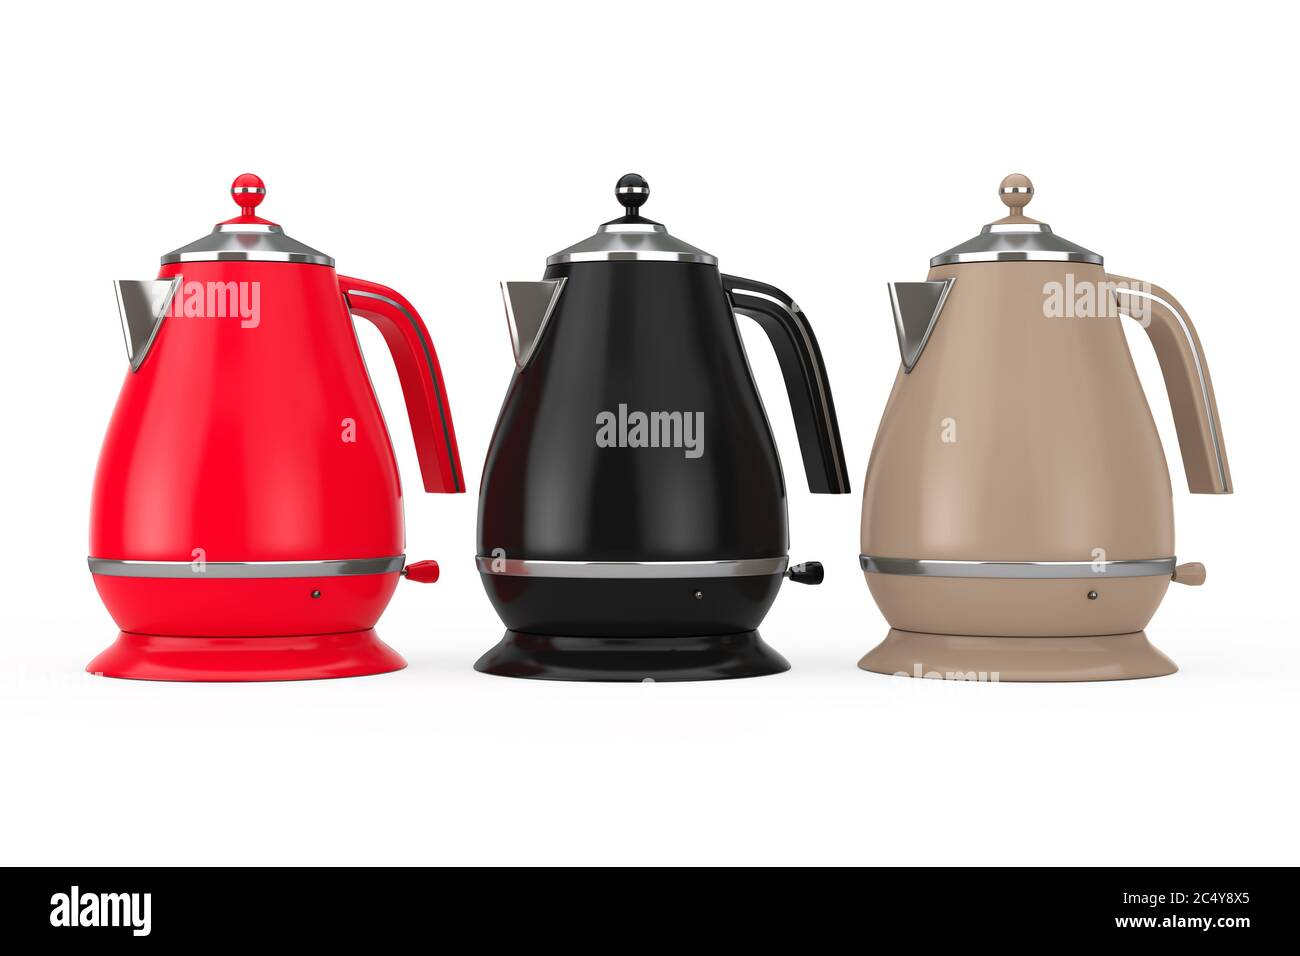 Multicolour Modern Teapot Or Electric Kettle On A White Background 3d Rendering Stock Photo Alamy